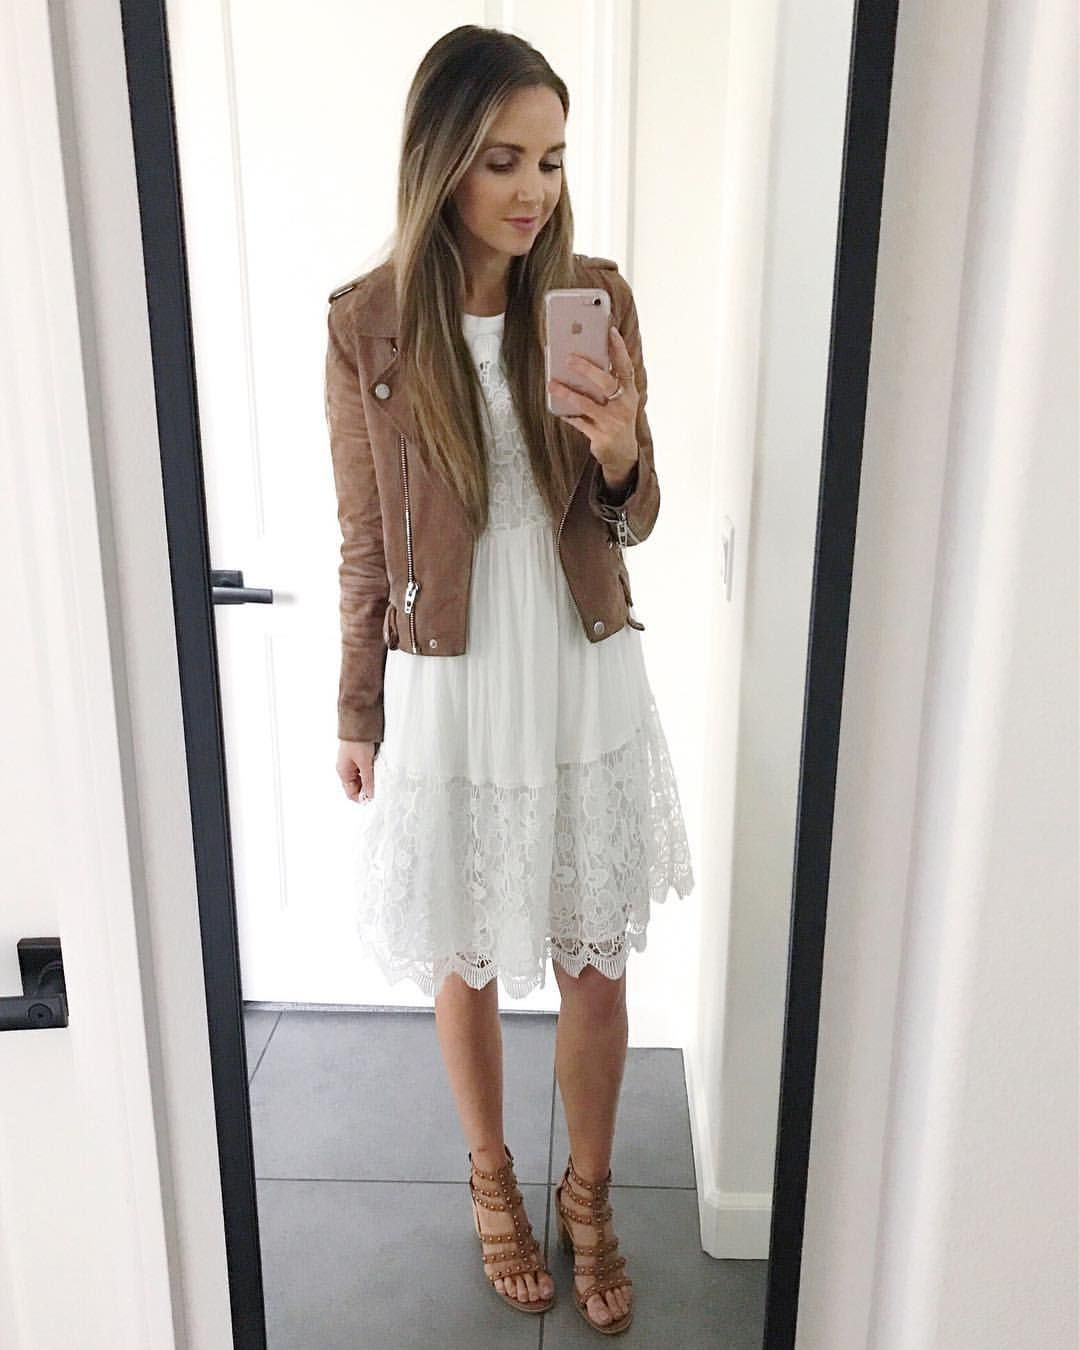 Summer Outfits For Church 50 Best Outfits Dresses For Teens Cute Church Outfits Church Outfit Fall [ 1350 x 1080 Pixel ]